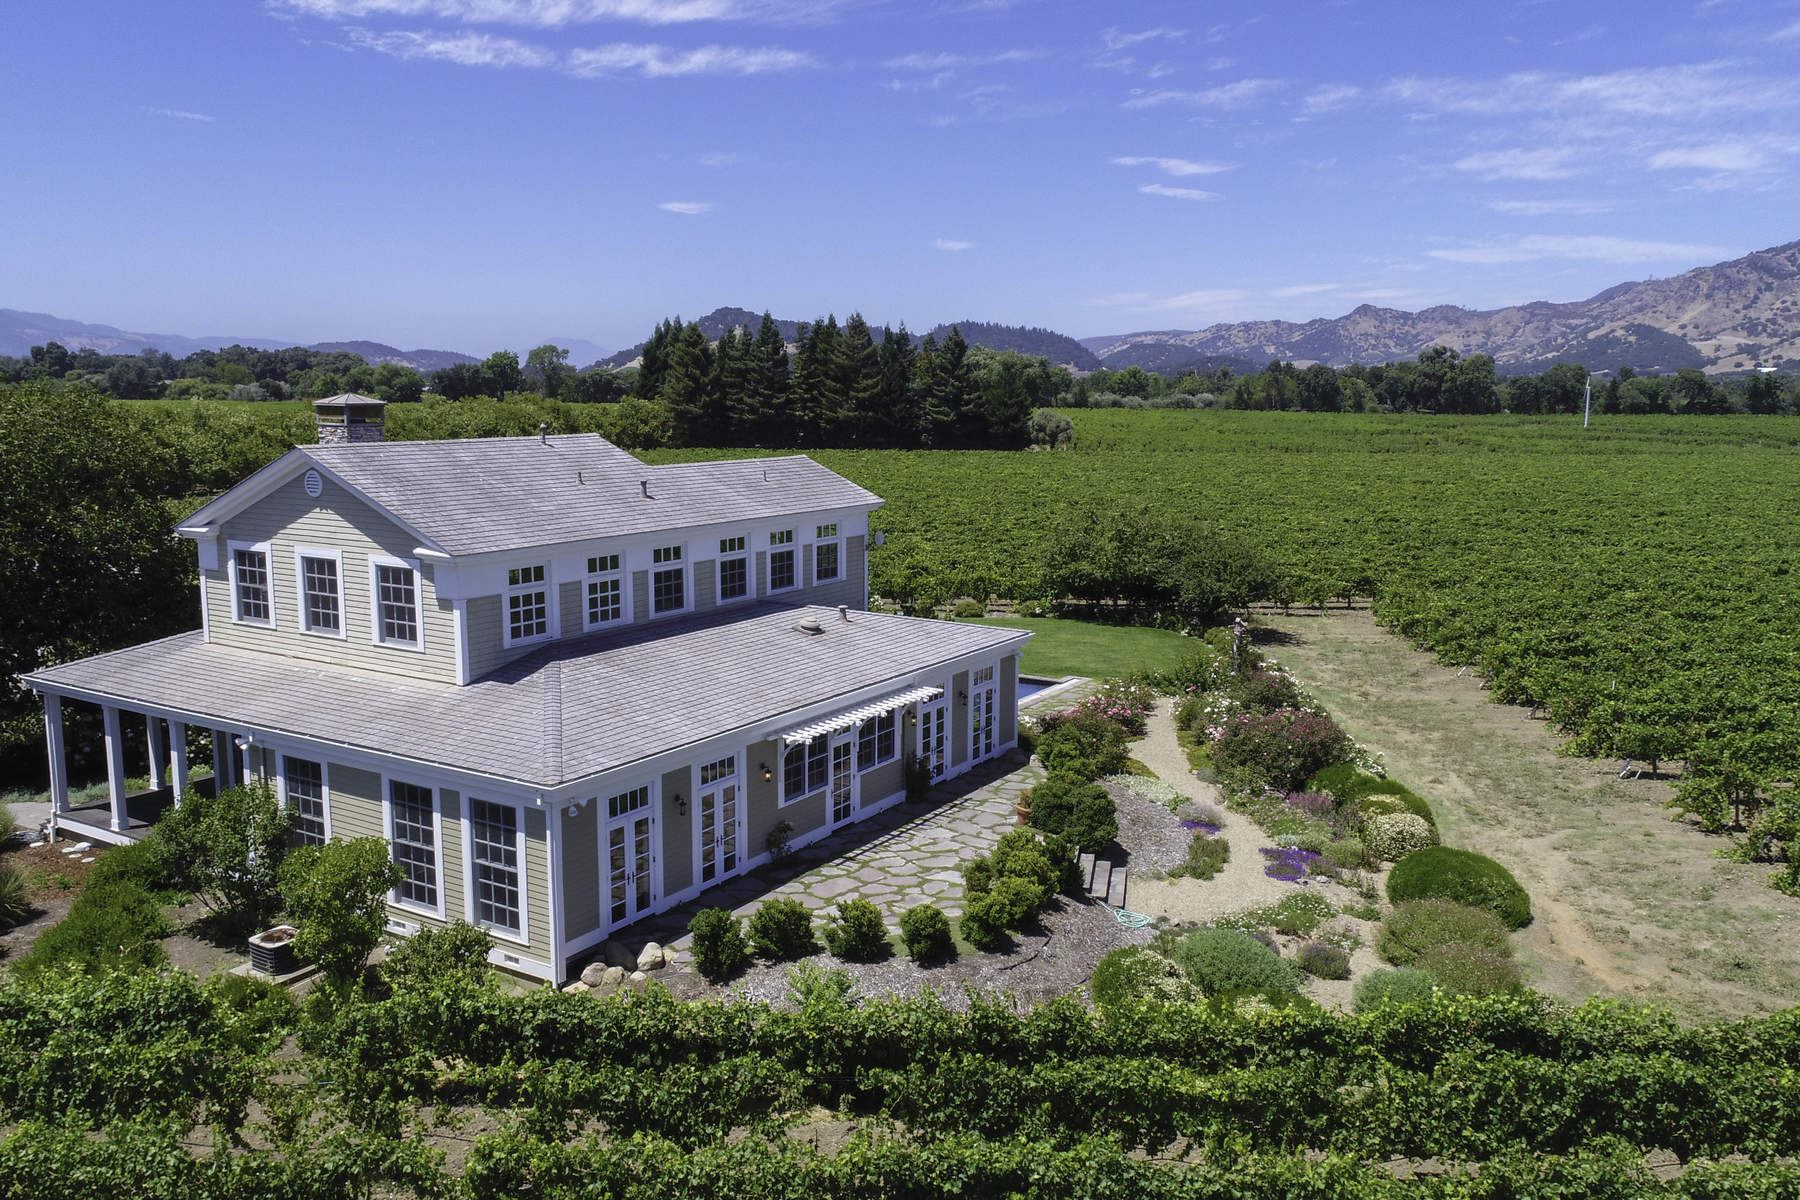 Single Family Home for Sale at Napa Valley Vineyard Estate 5224 Big Ranch Rd Napa, California 94558 United States